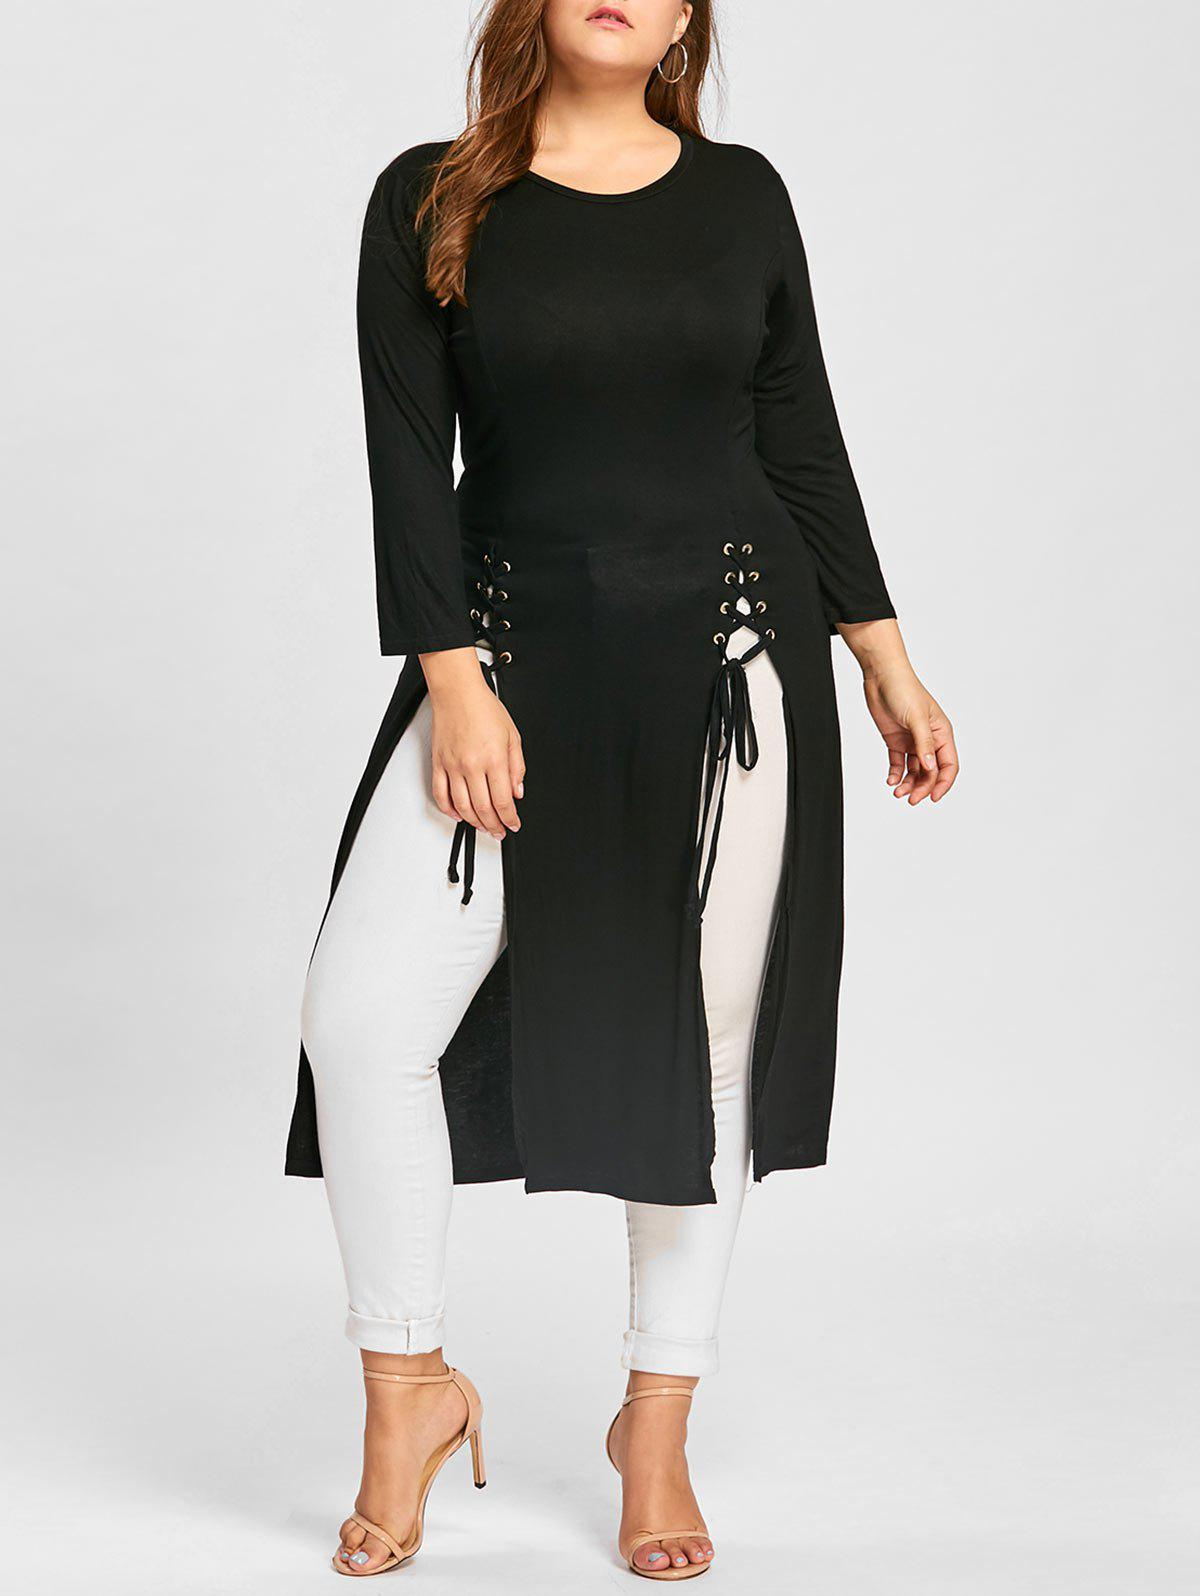 Maxi Lace-up Plus Size Long Sleeve DressWOMEN<br><br>Size: XL; Color: BLACK; Style: Casual; Material: Polyester,Spandex; Silhouette: Straight; Dresses Length: Knee-Length; Neckline: Round Collar; Sleeve Length: Long Sleeves; Pattern Type: Solid; With Belt: No; Season: Fall,Spring; Weight: 0.4200kg; Package Contents: 1 x Dress;